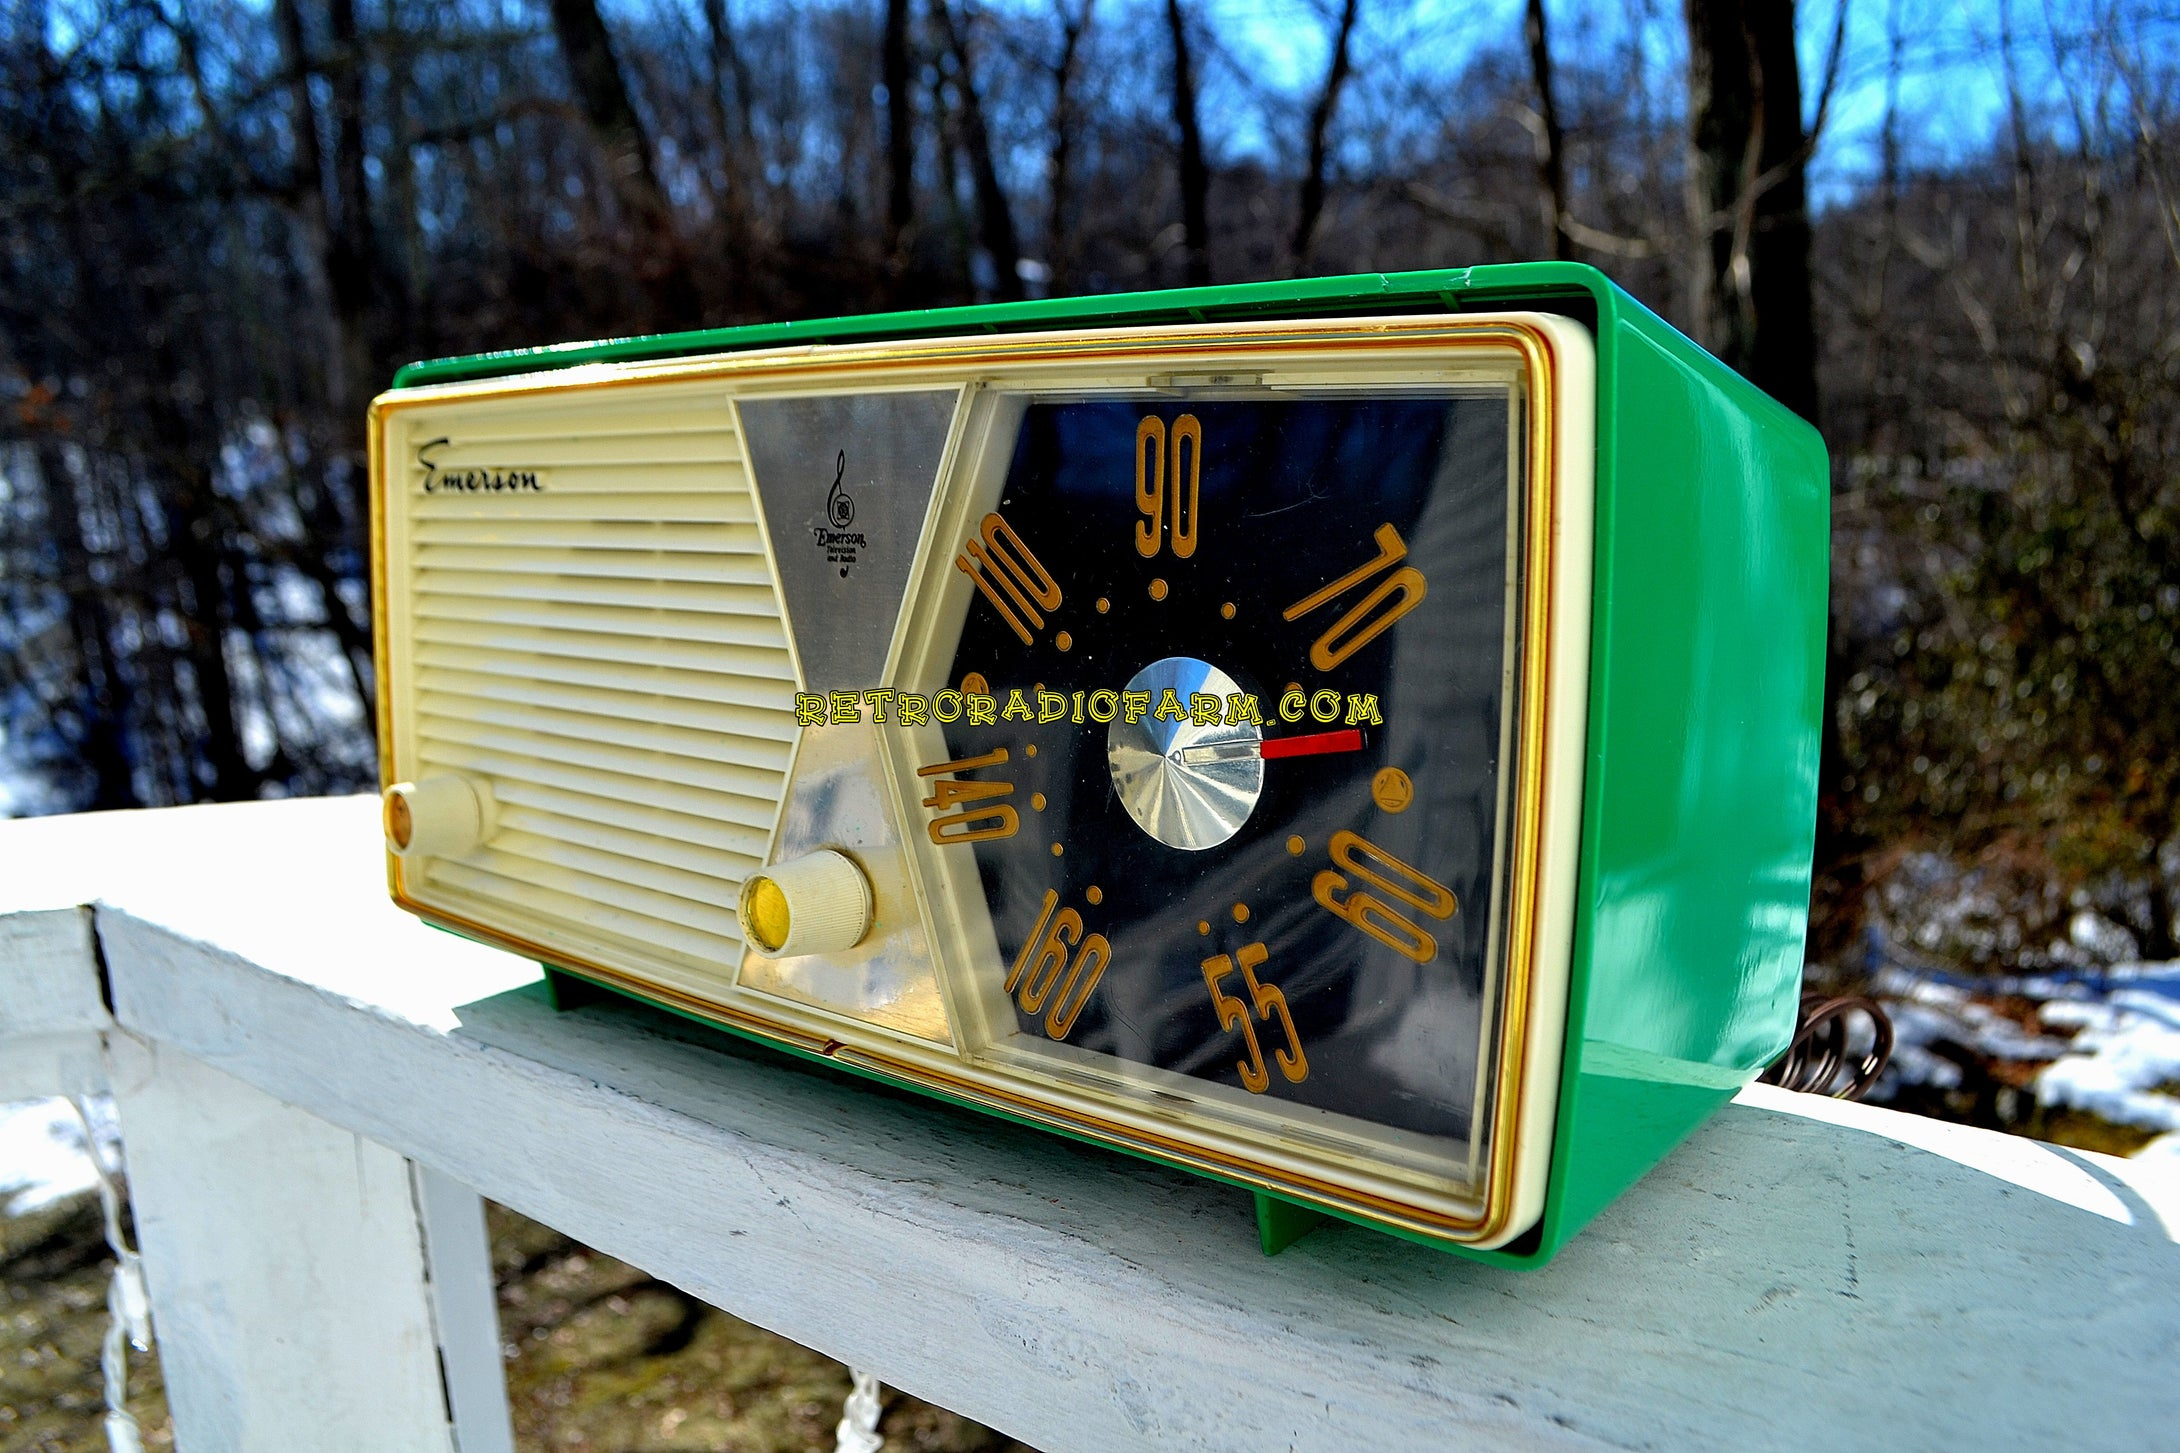 SOLD! - June 23, 2018 - SHAMROCK GREEN 1956 Emerson Model 876B Tube AM Radio Mid Century Rare Color Sounds Great! - [product_type} - Emerson - Retro Radio Farm